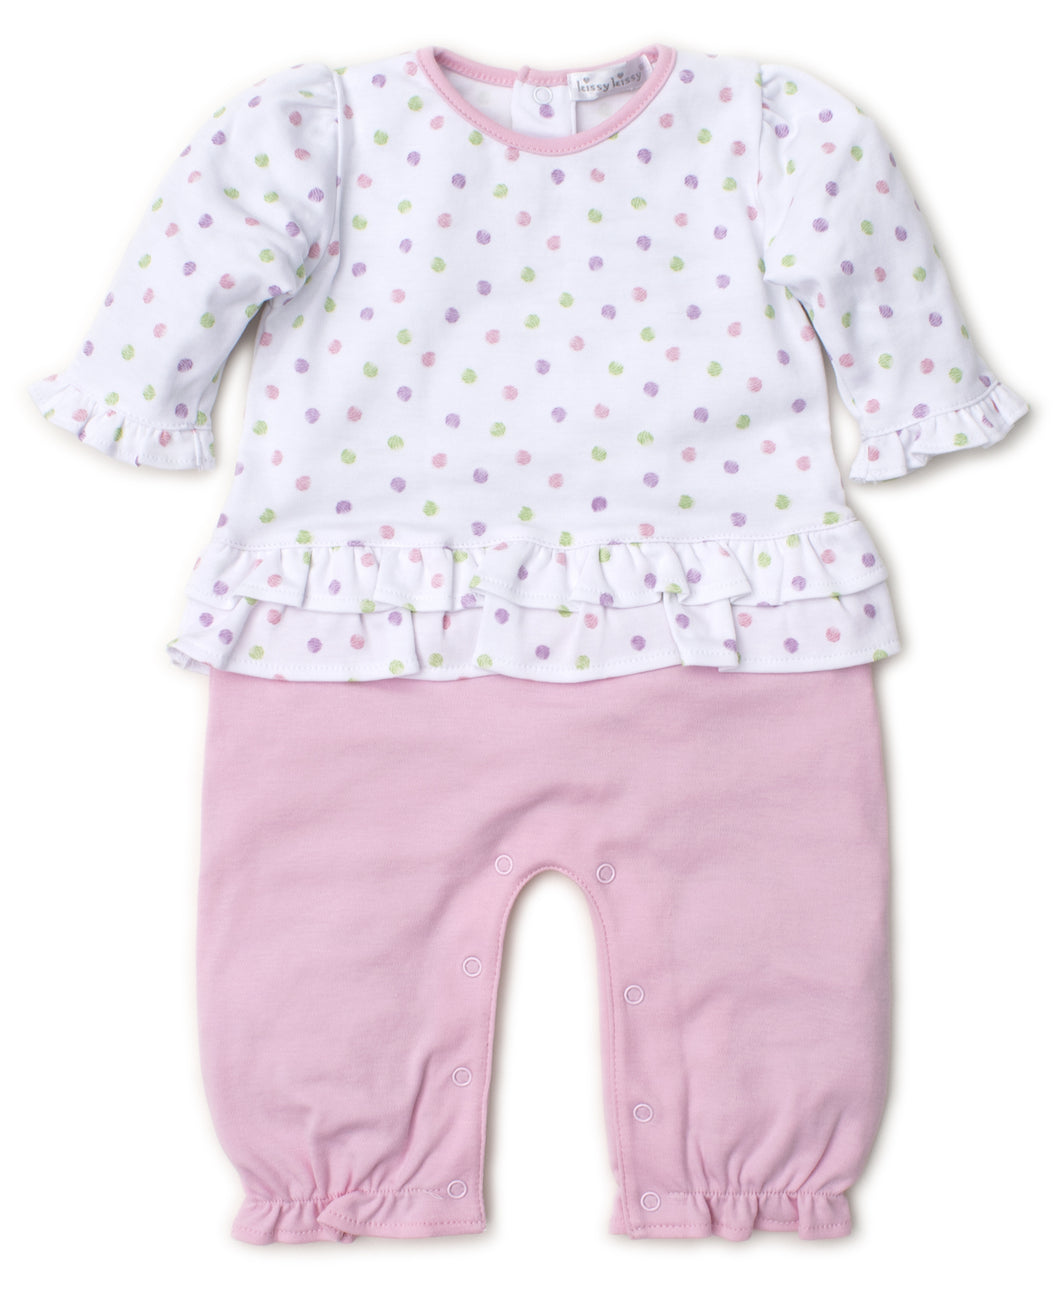 Dapple Dots Playsuit Mix - Pink